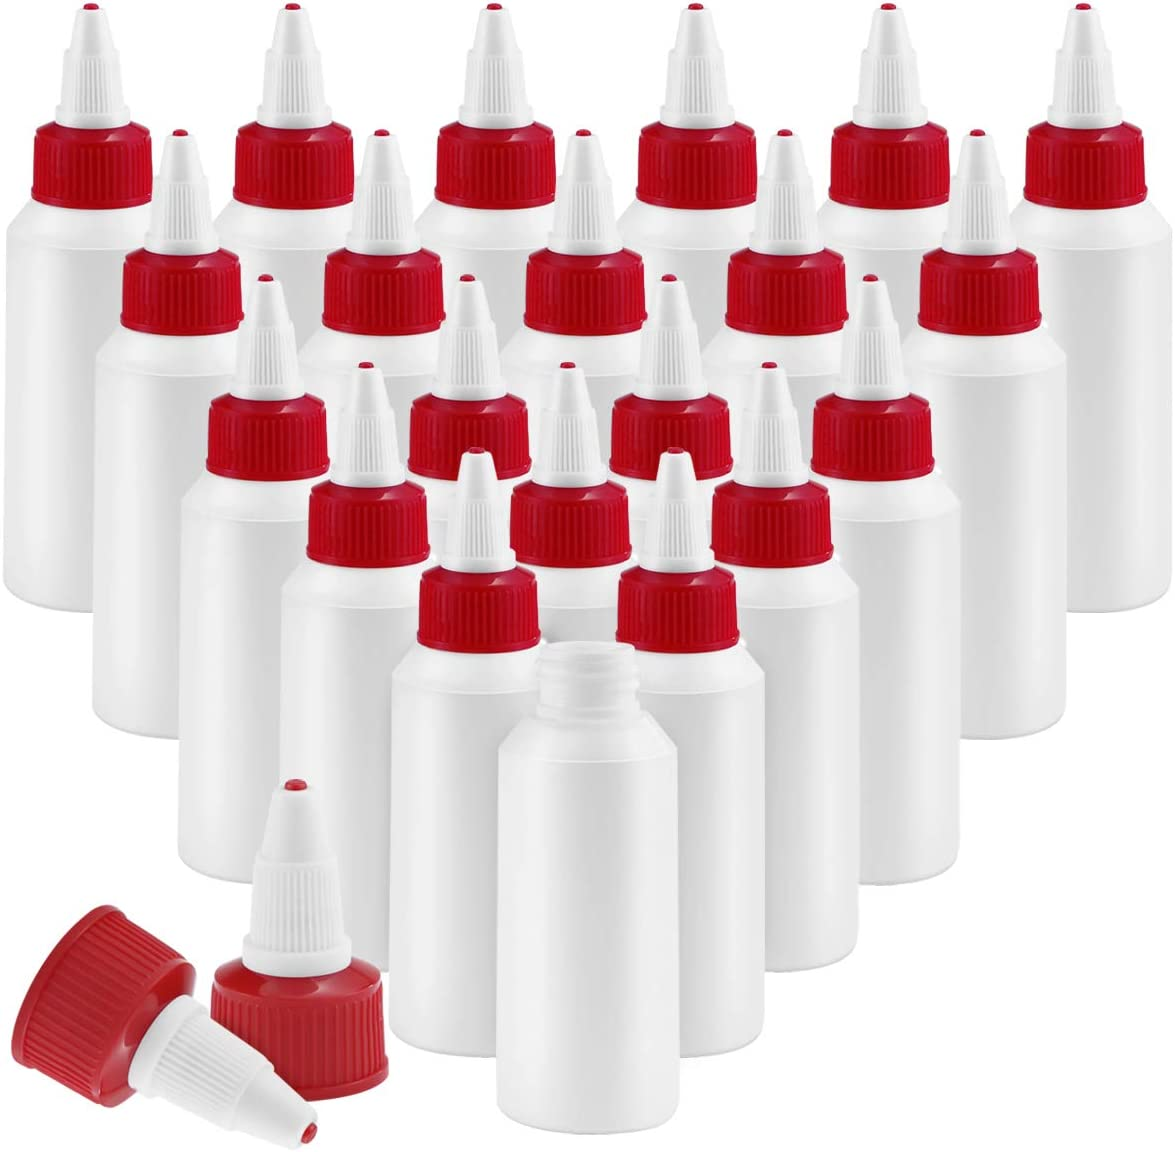 Twdrer 20 Pack Dispensing Bottles with Twist Top Cap,Small Boston Round LDPE Plastic Squeeze Bottle(2oz/60ml)